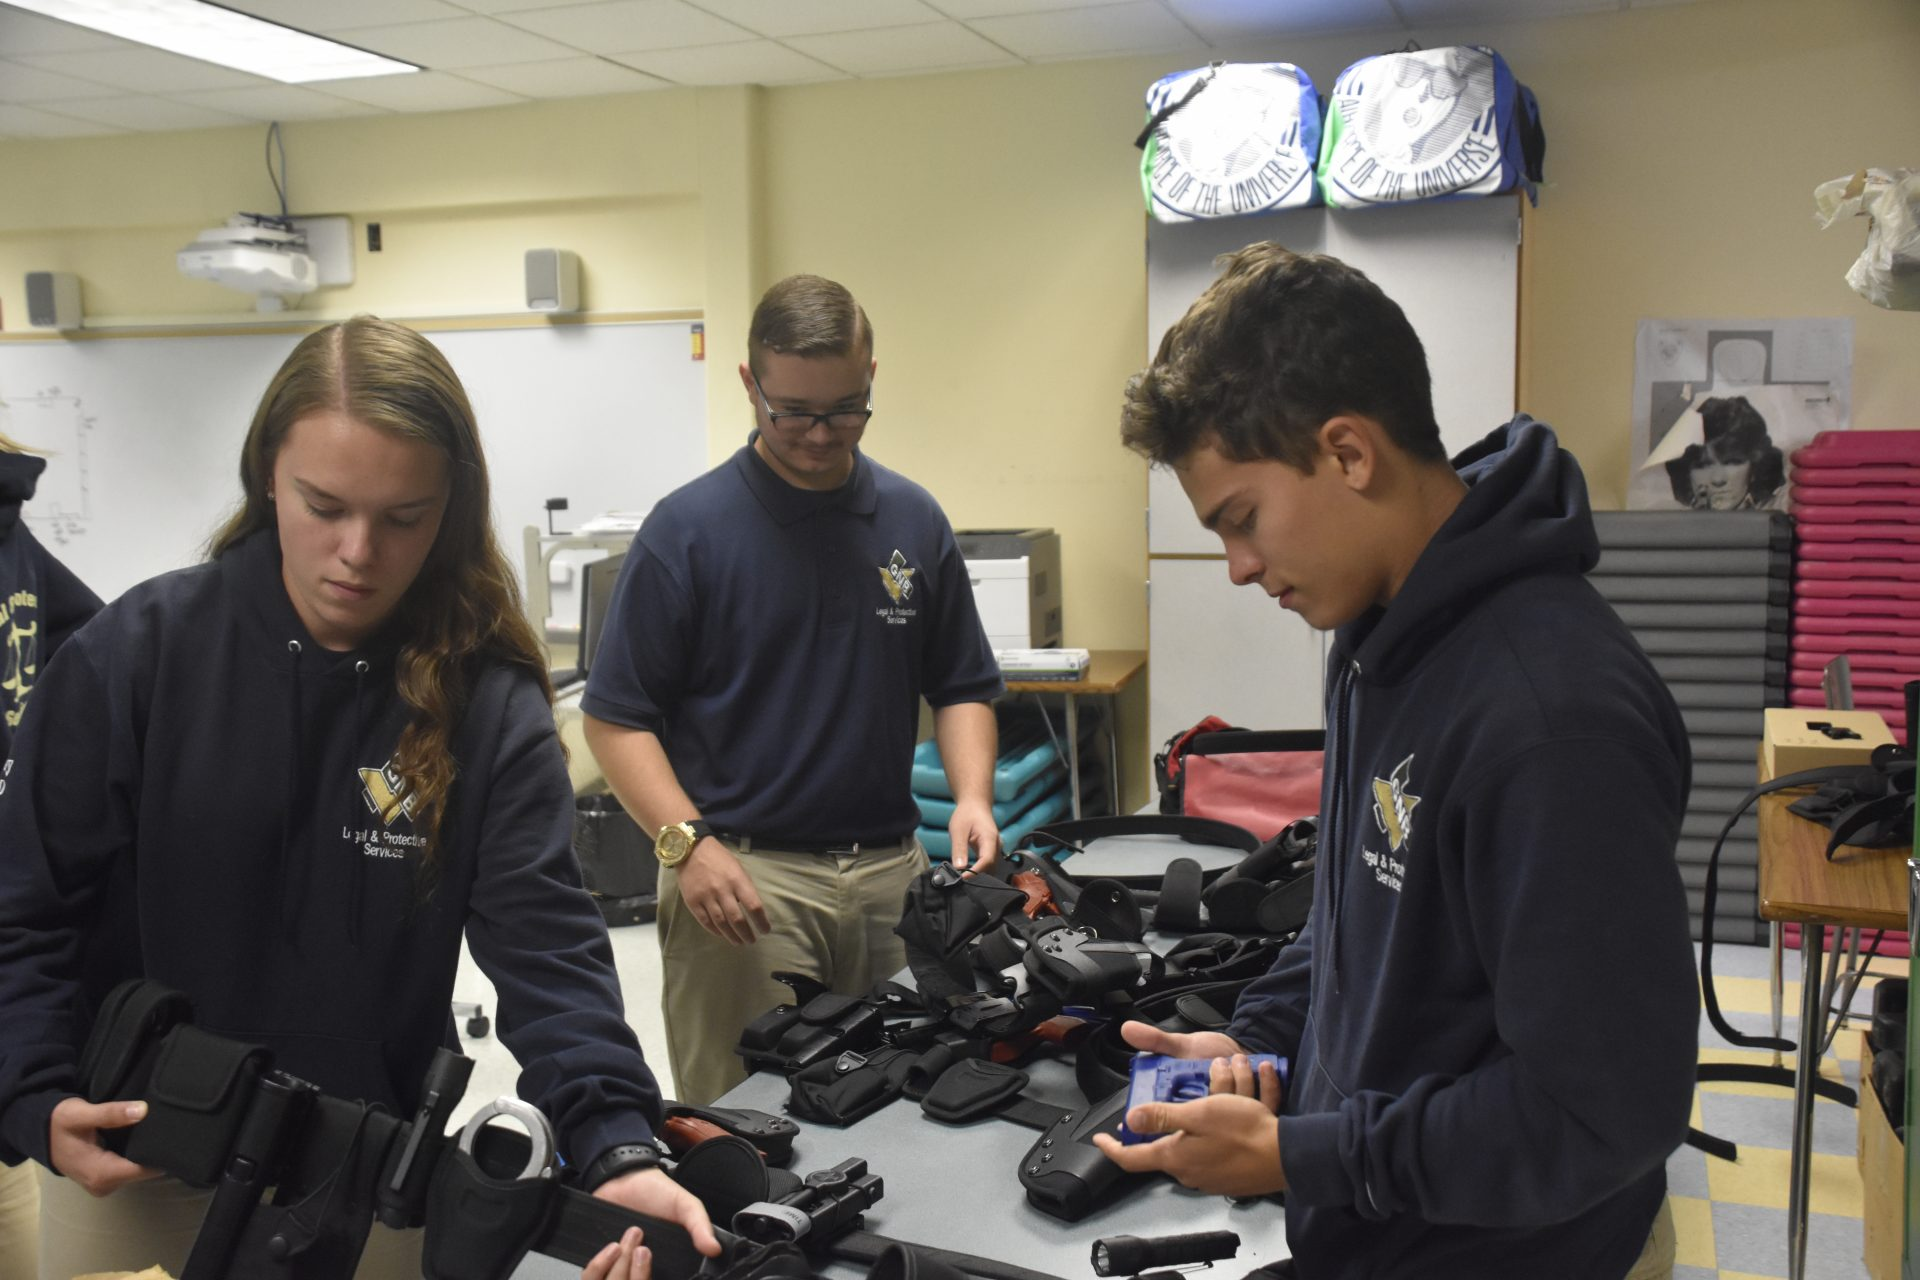 Three Students Looking Over Equipment